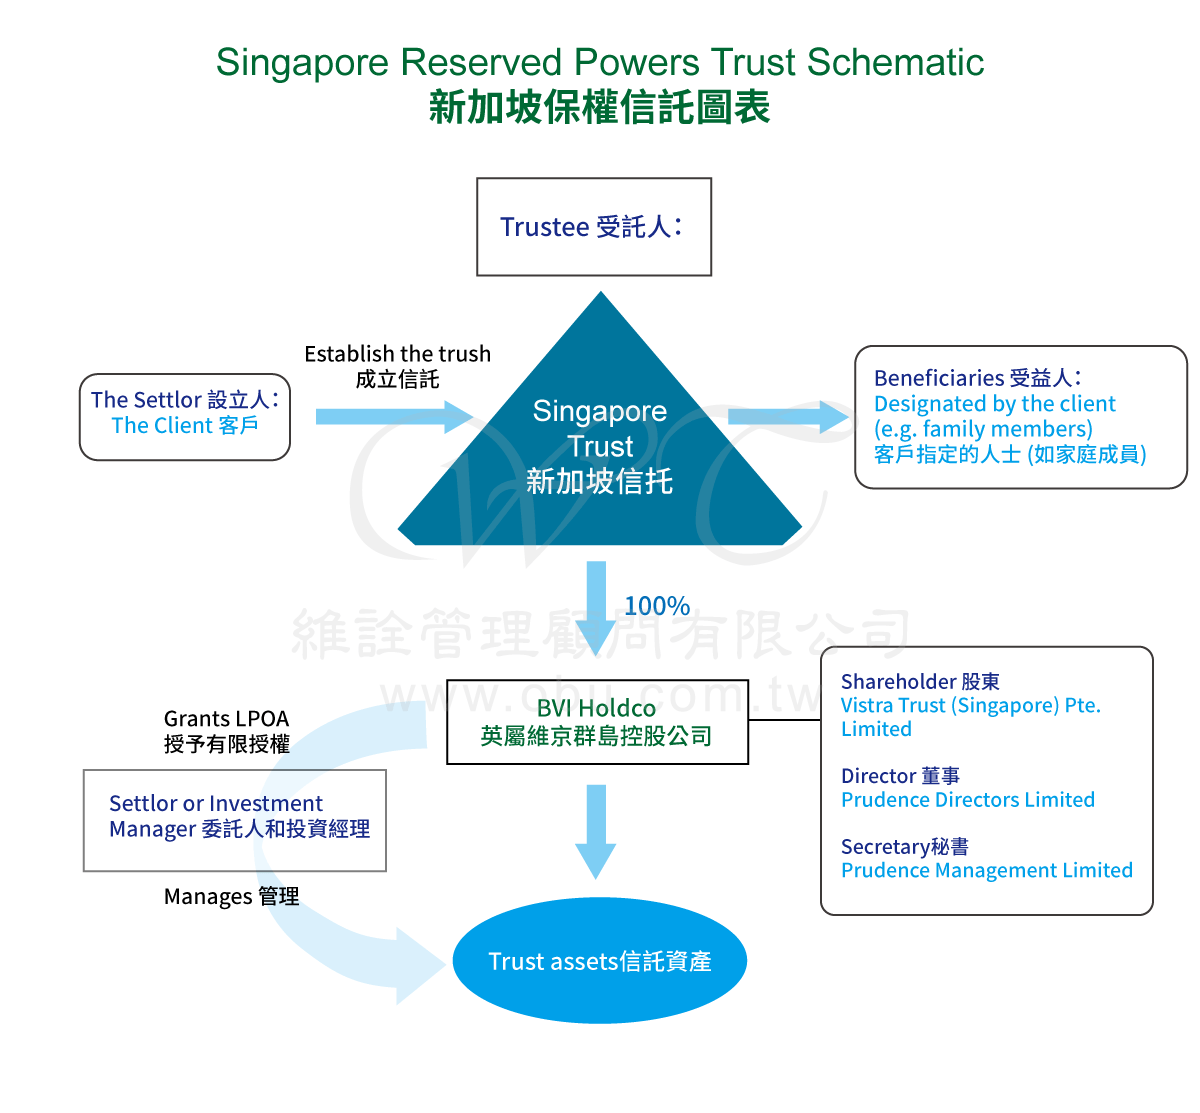 Singapore Reserved Powers Trust Schematic 新加坡保權信託圖表